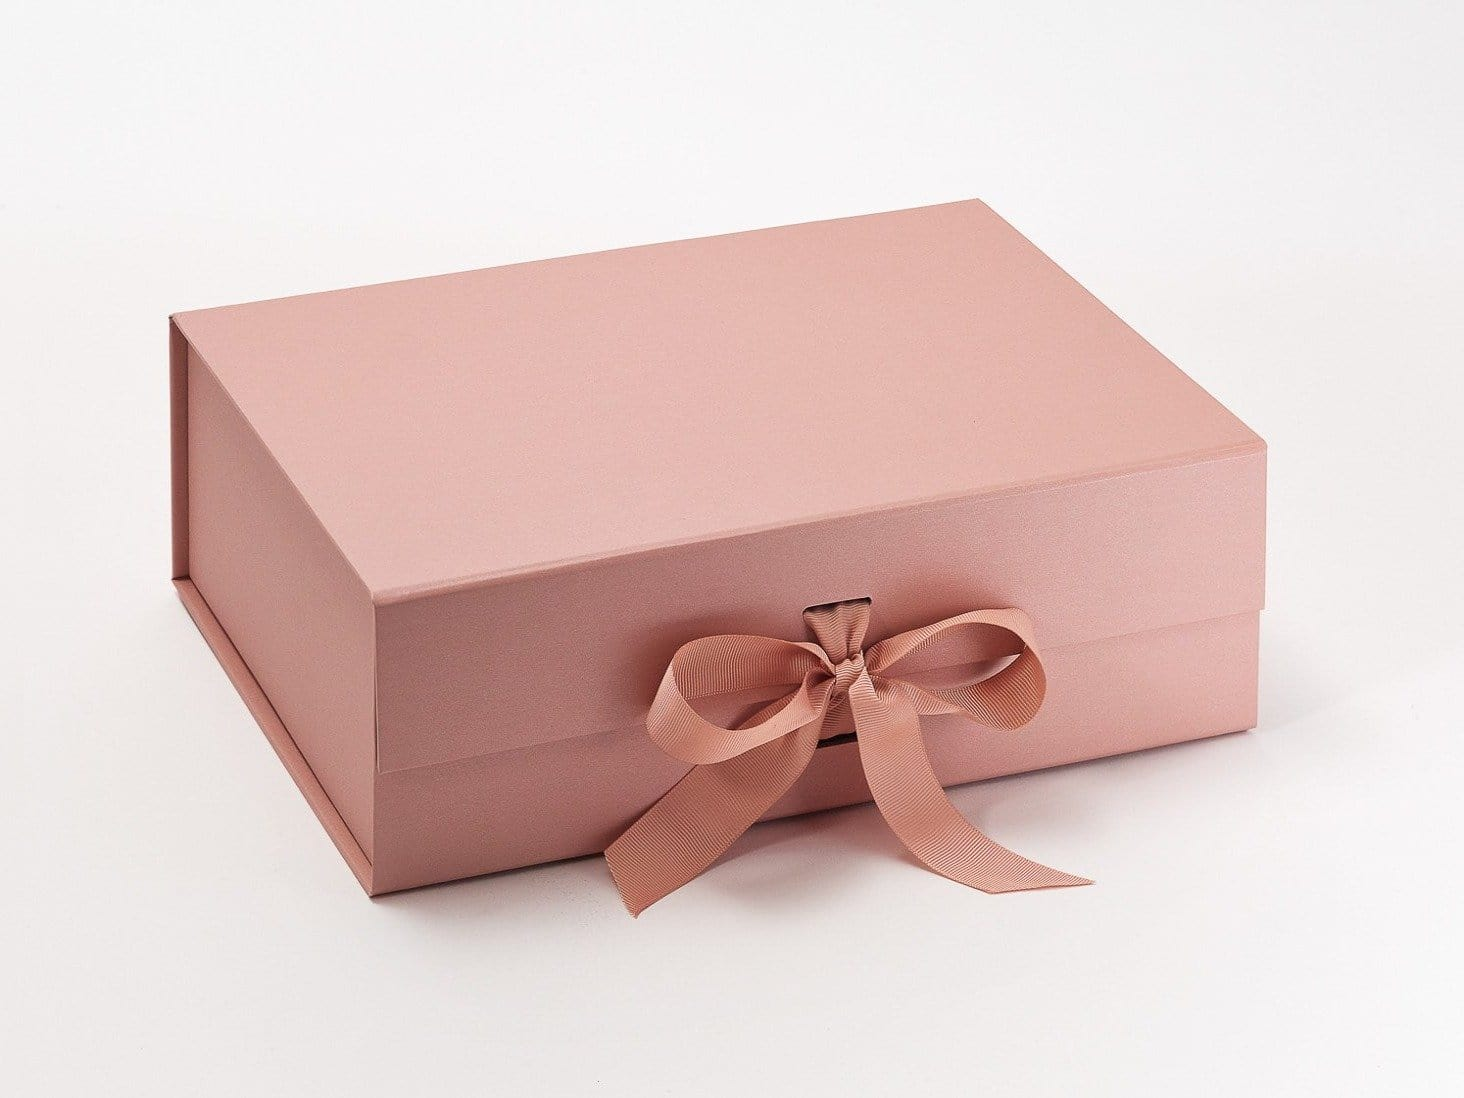 Rose Gold A4 Deep Luxury Gift Box s≤ with changeable ribbon & Sample Rose Gold A4 Deep Gift Box for Retail Gift Packaging ...